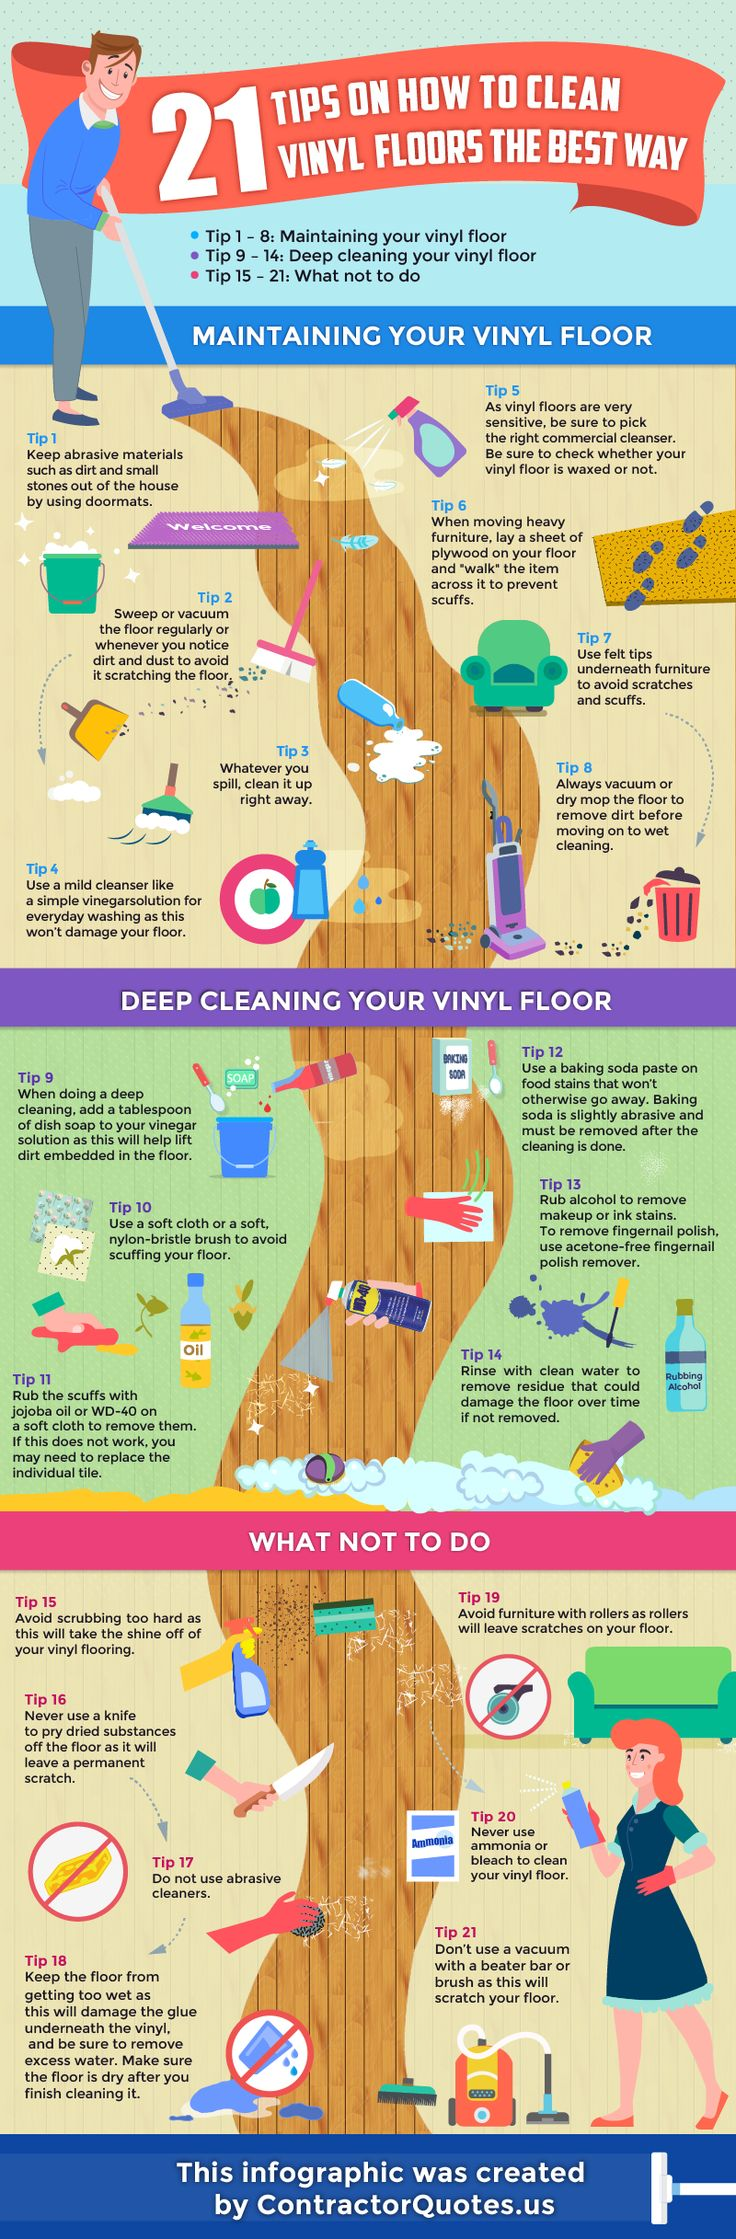 21 Tips: How to Clean Vinyl Plank Flooring the Best Way